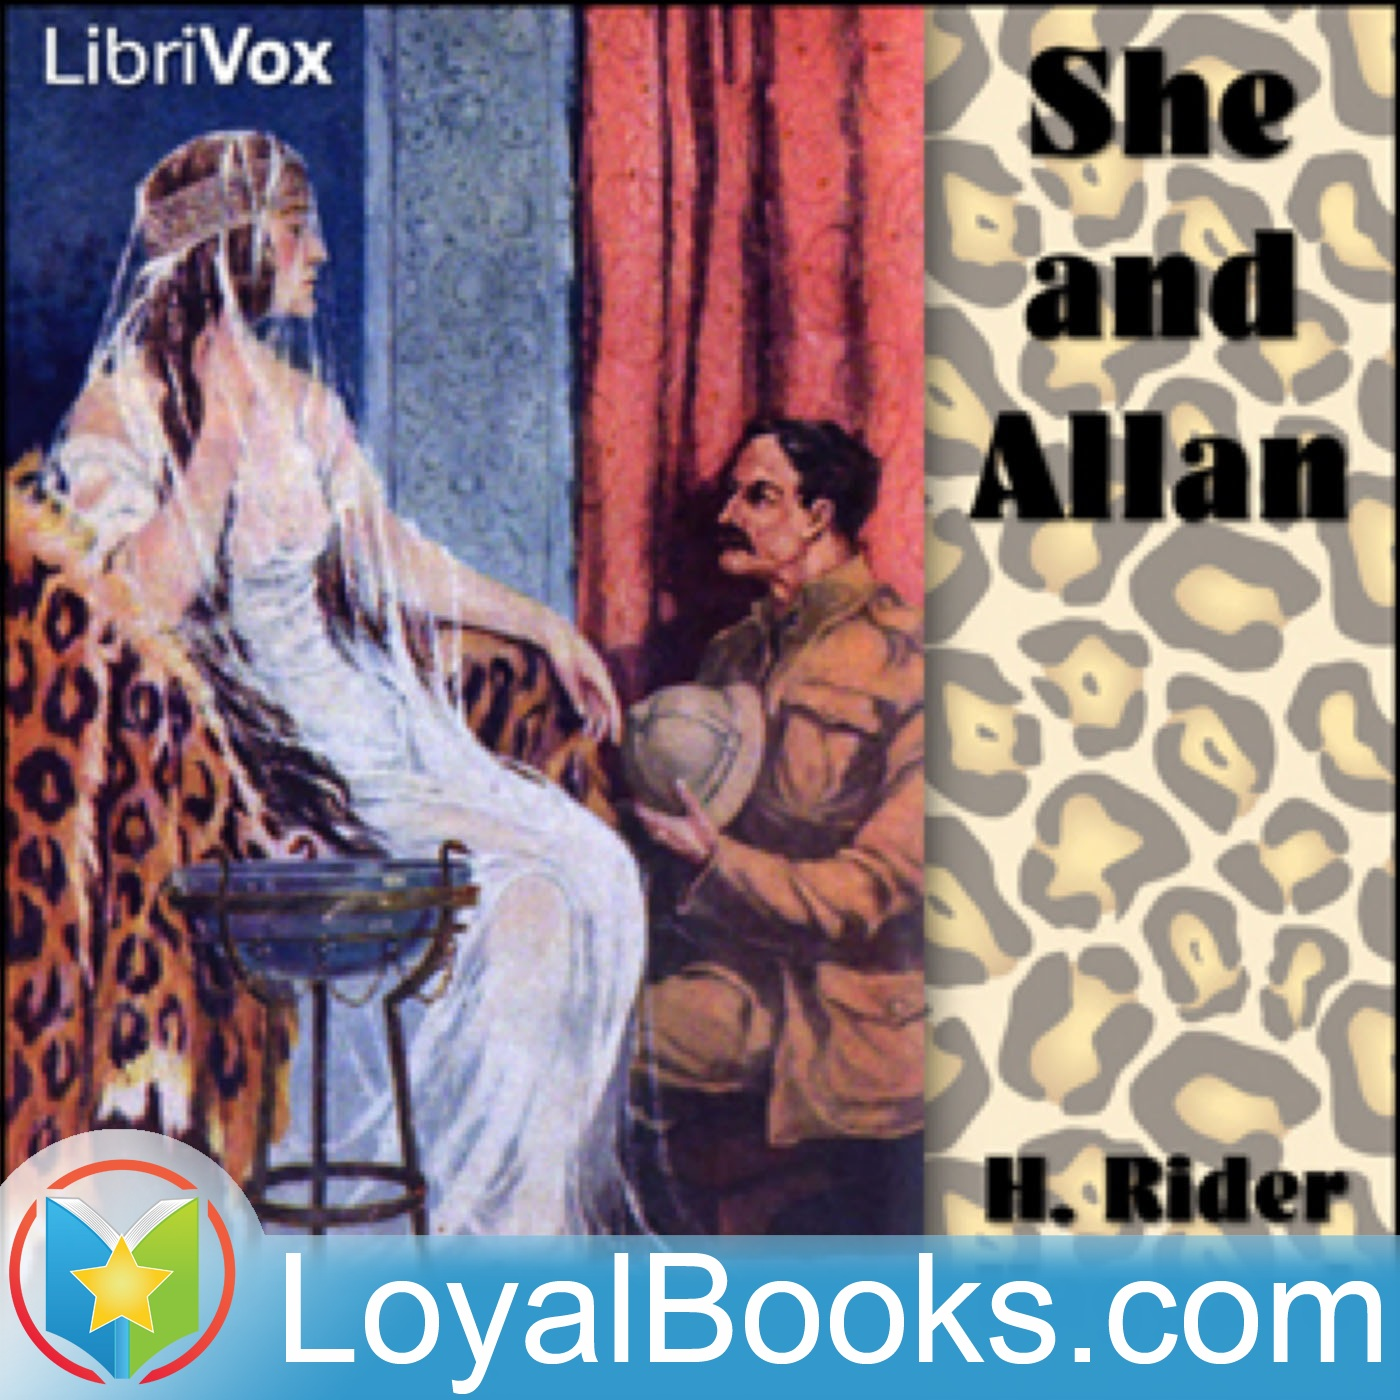 <![CDATA[She and Allan by H Rider Haggard]]>